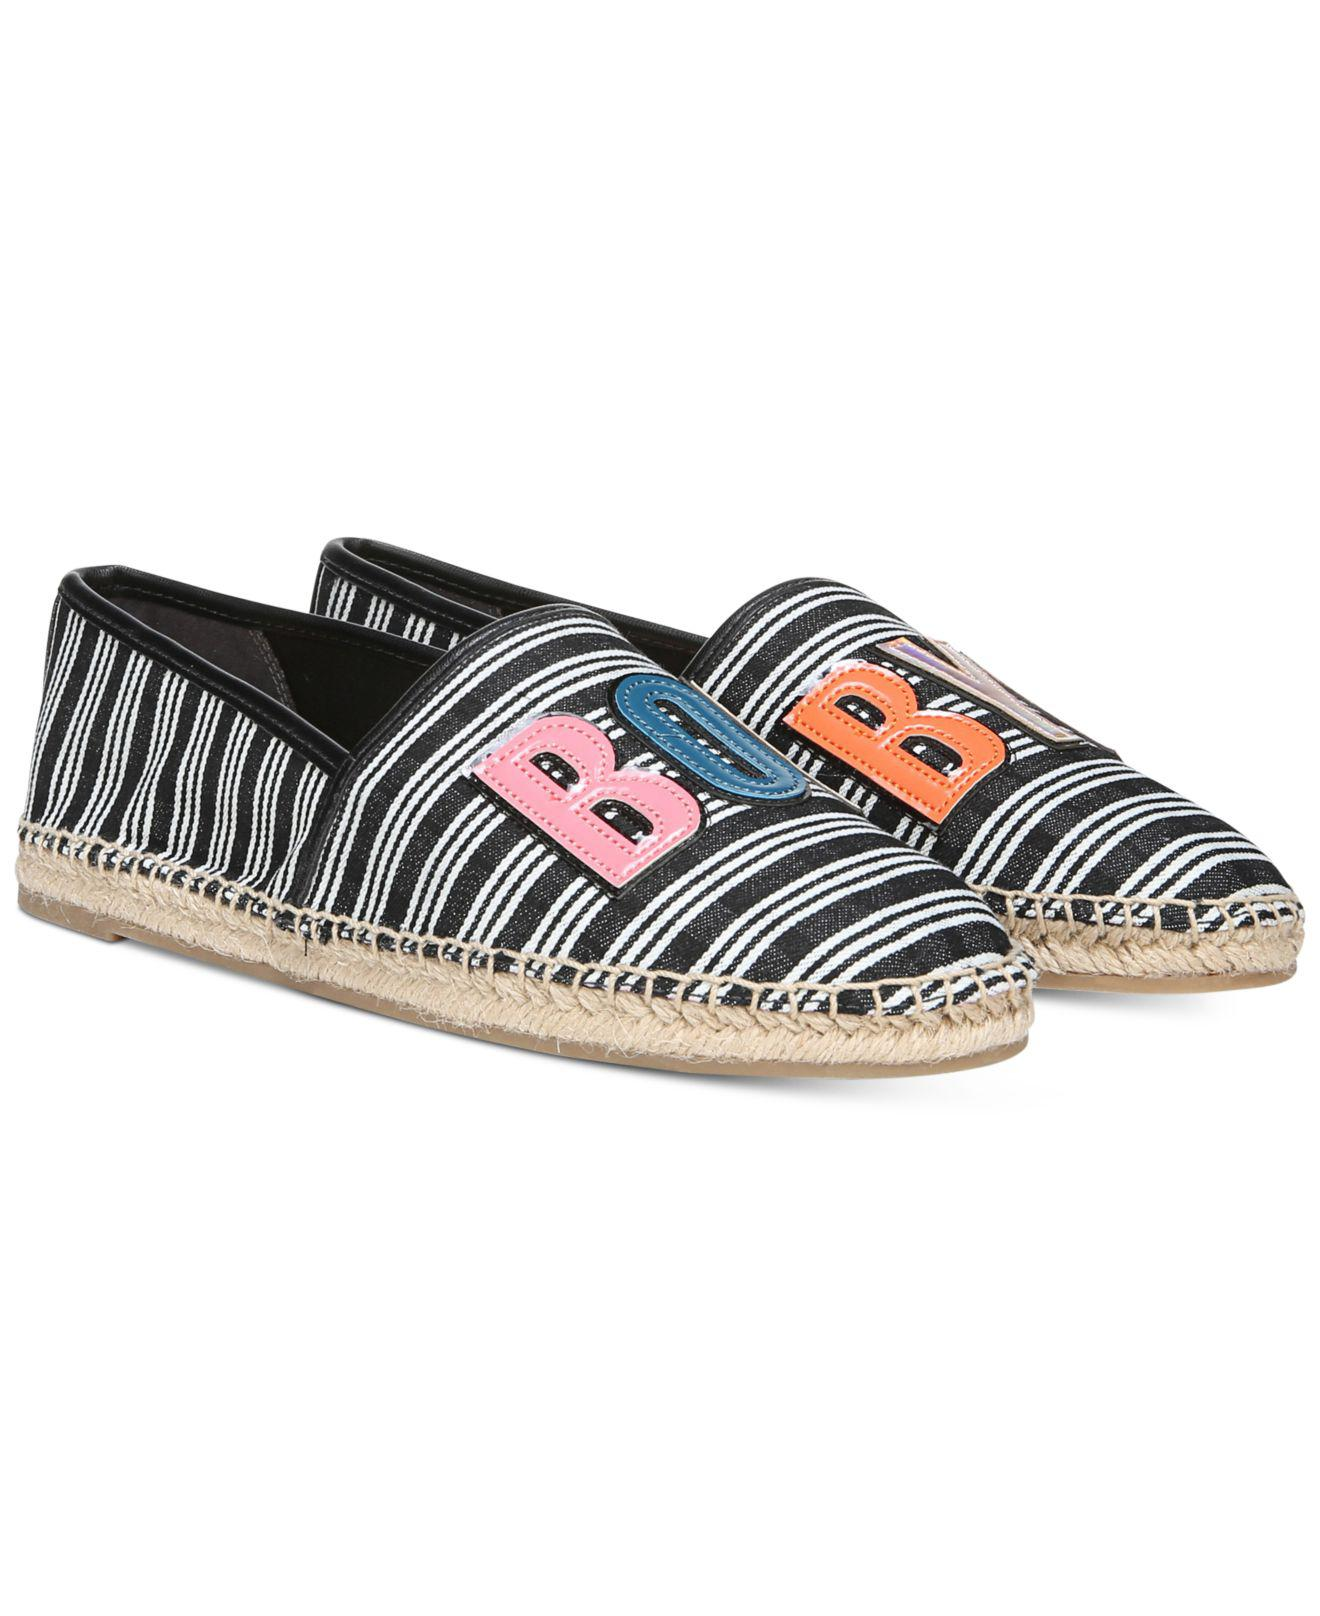 thoughts on differently amazing price Leni Boy Bye Espadrille Flats